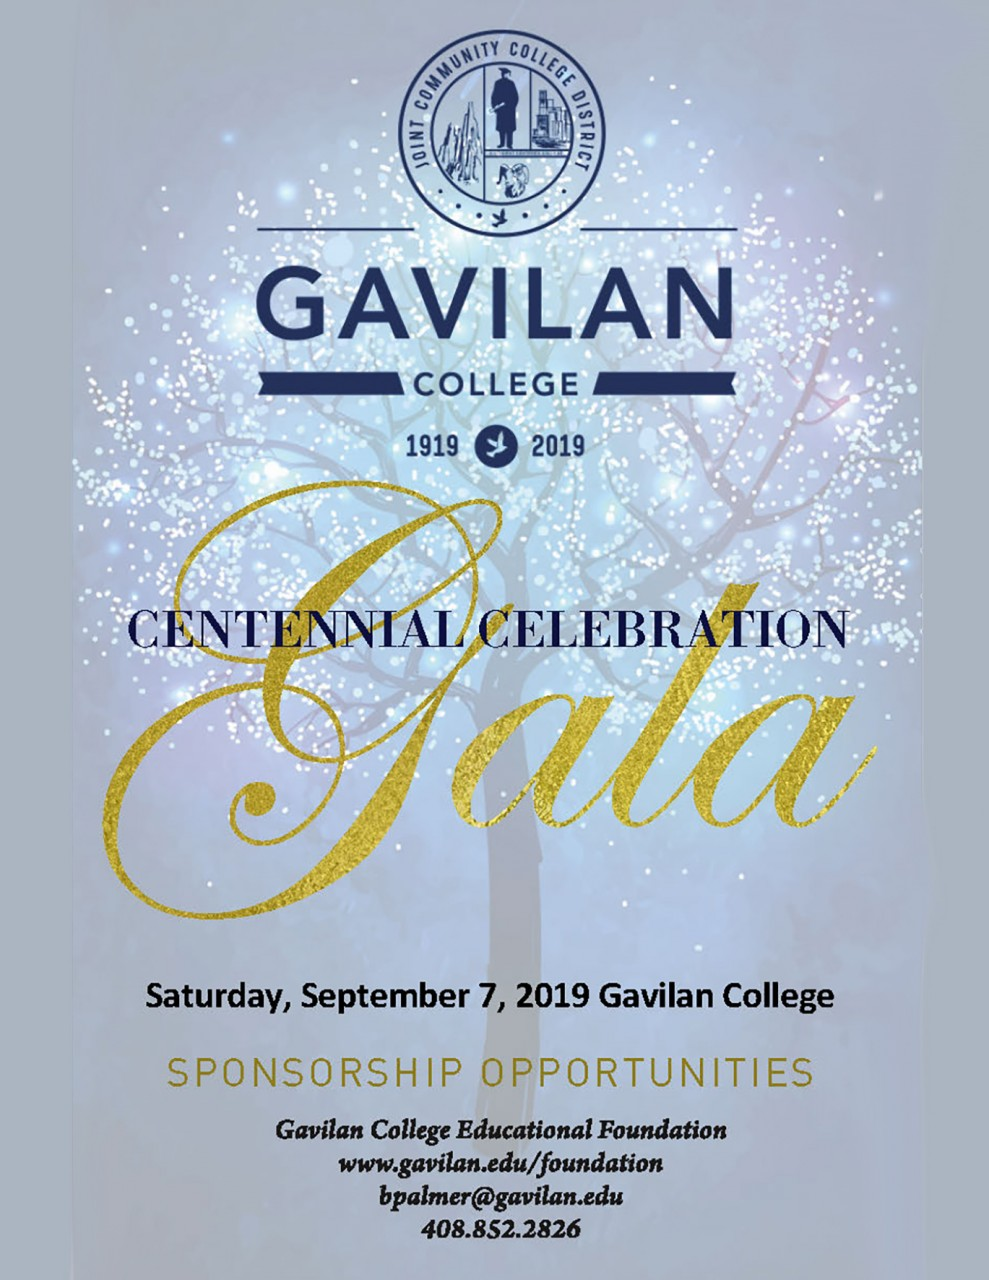 Flyer courtesy of Gavilan College website.